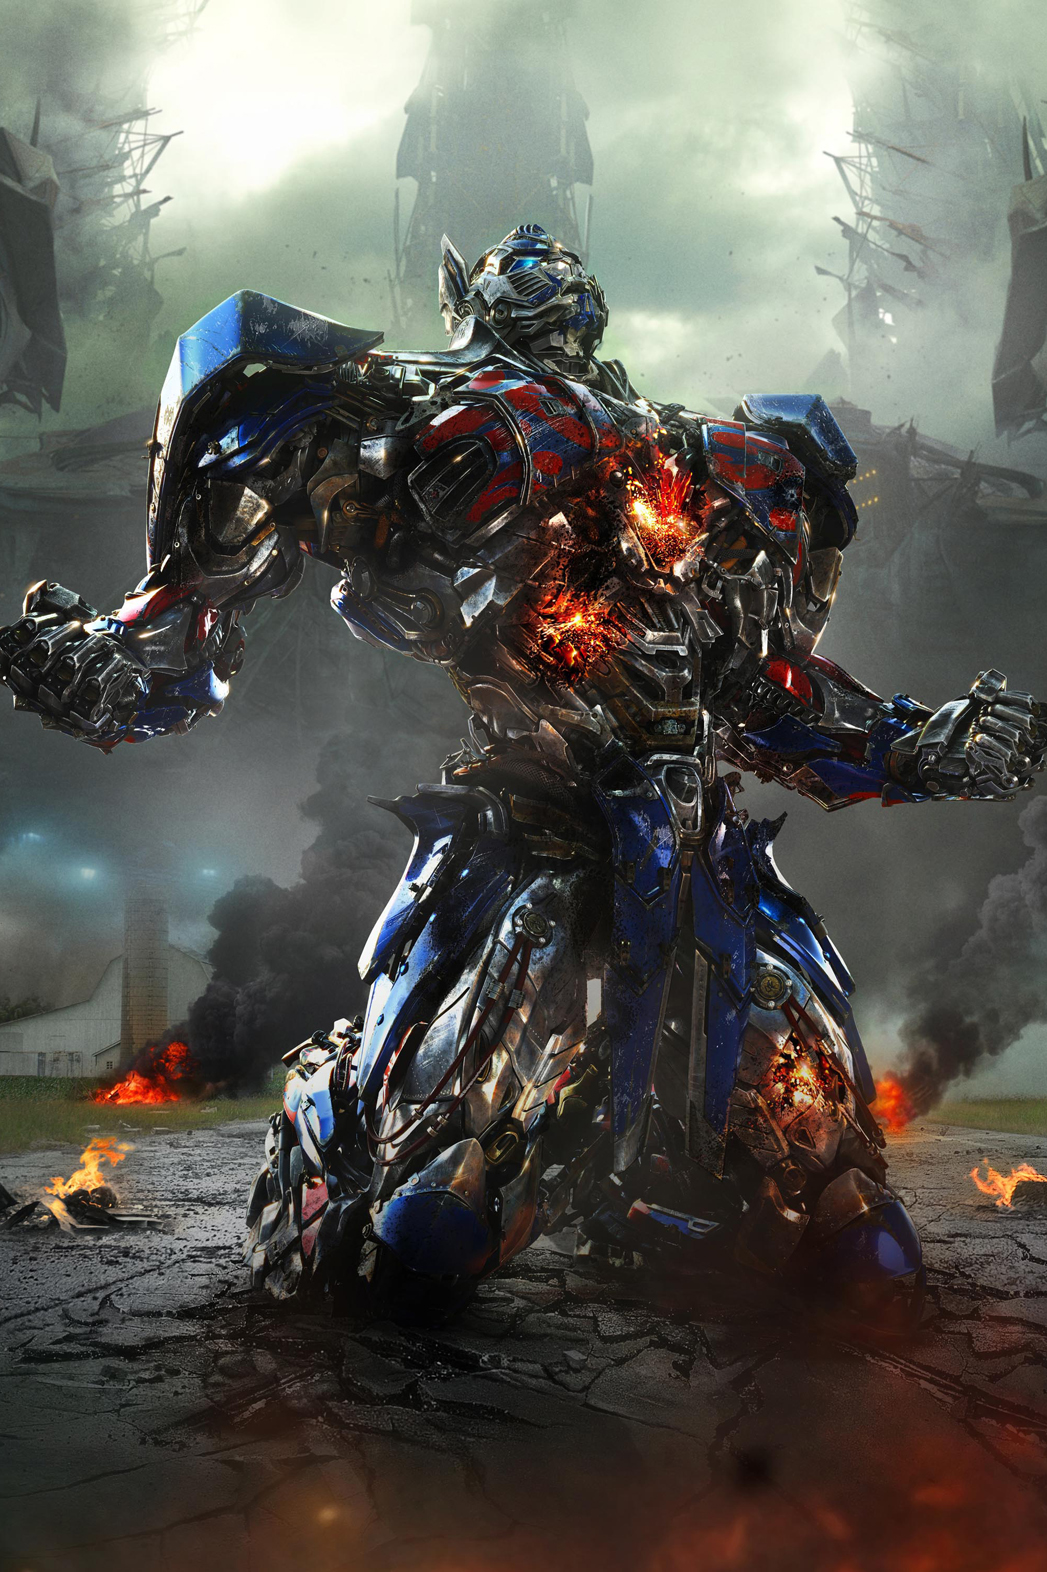 Transformers Last Knight Streaming : transformers, knight, streaming, Transformers:, Knight':, Optimus, Prime, Wields, Sword, Hollywood, Reporter